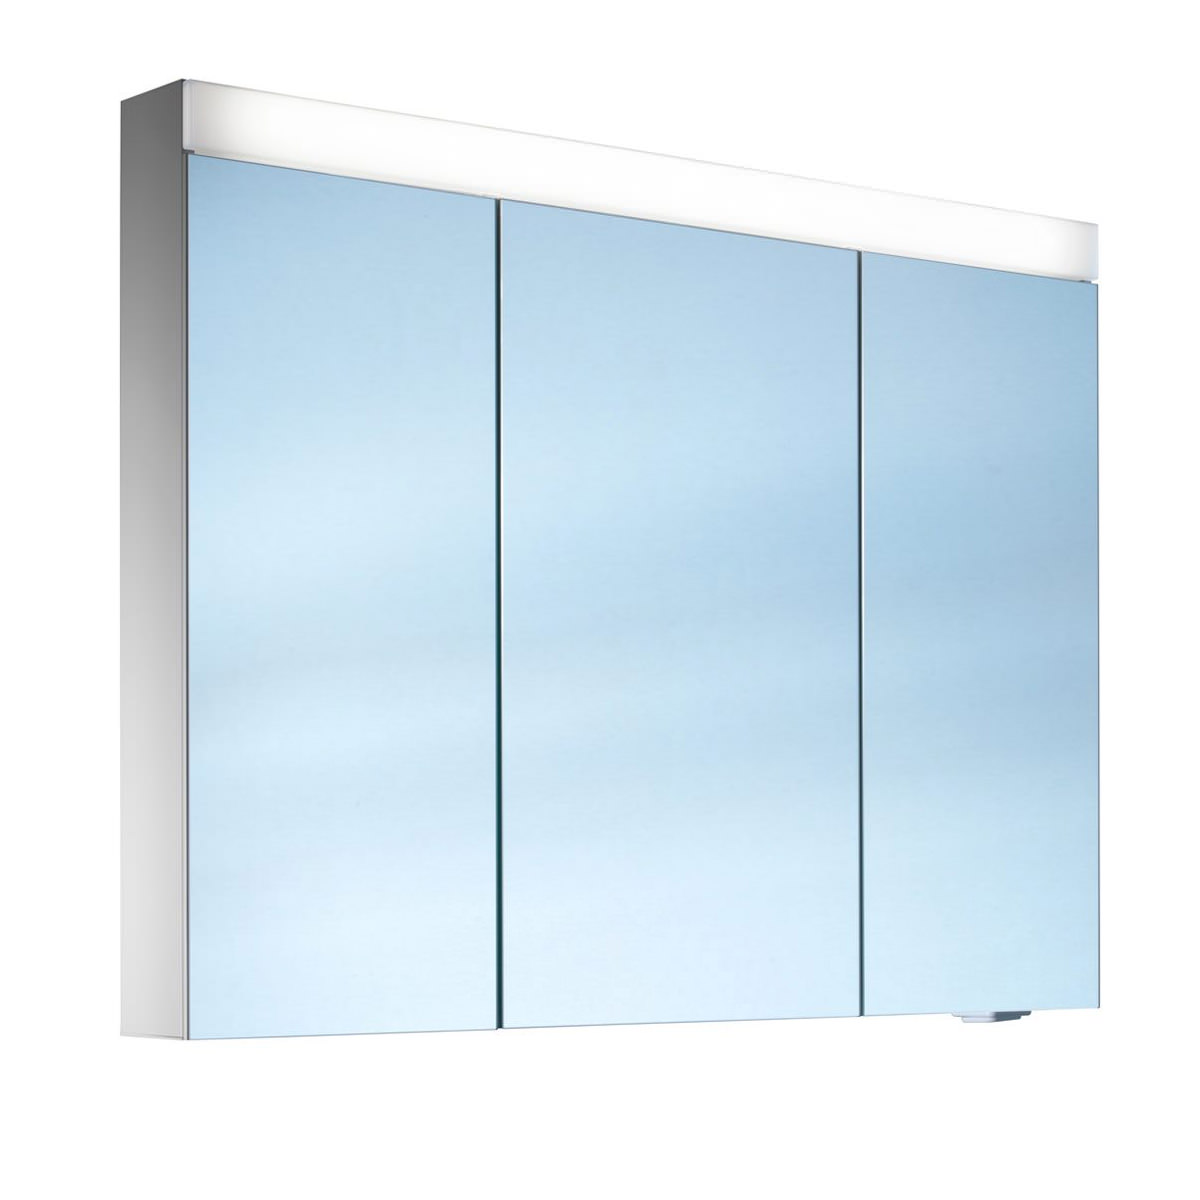 Schneider pataline 3 door led mirror cabinet 1000mm for Bathroom cabinets led